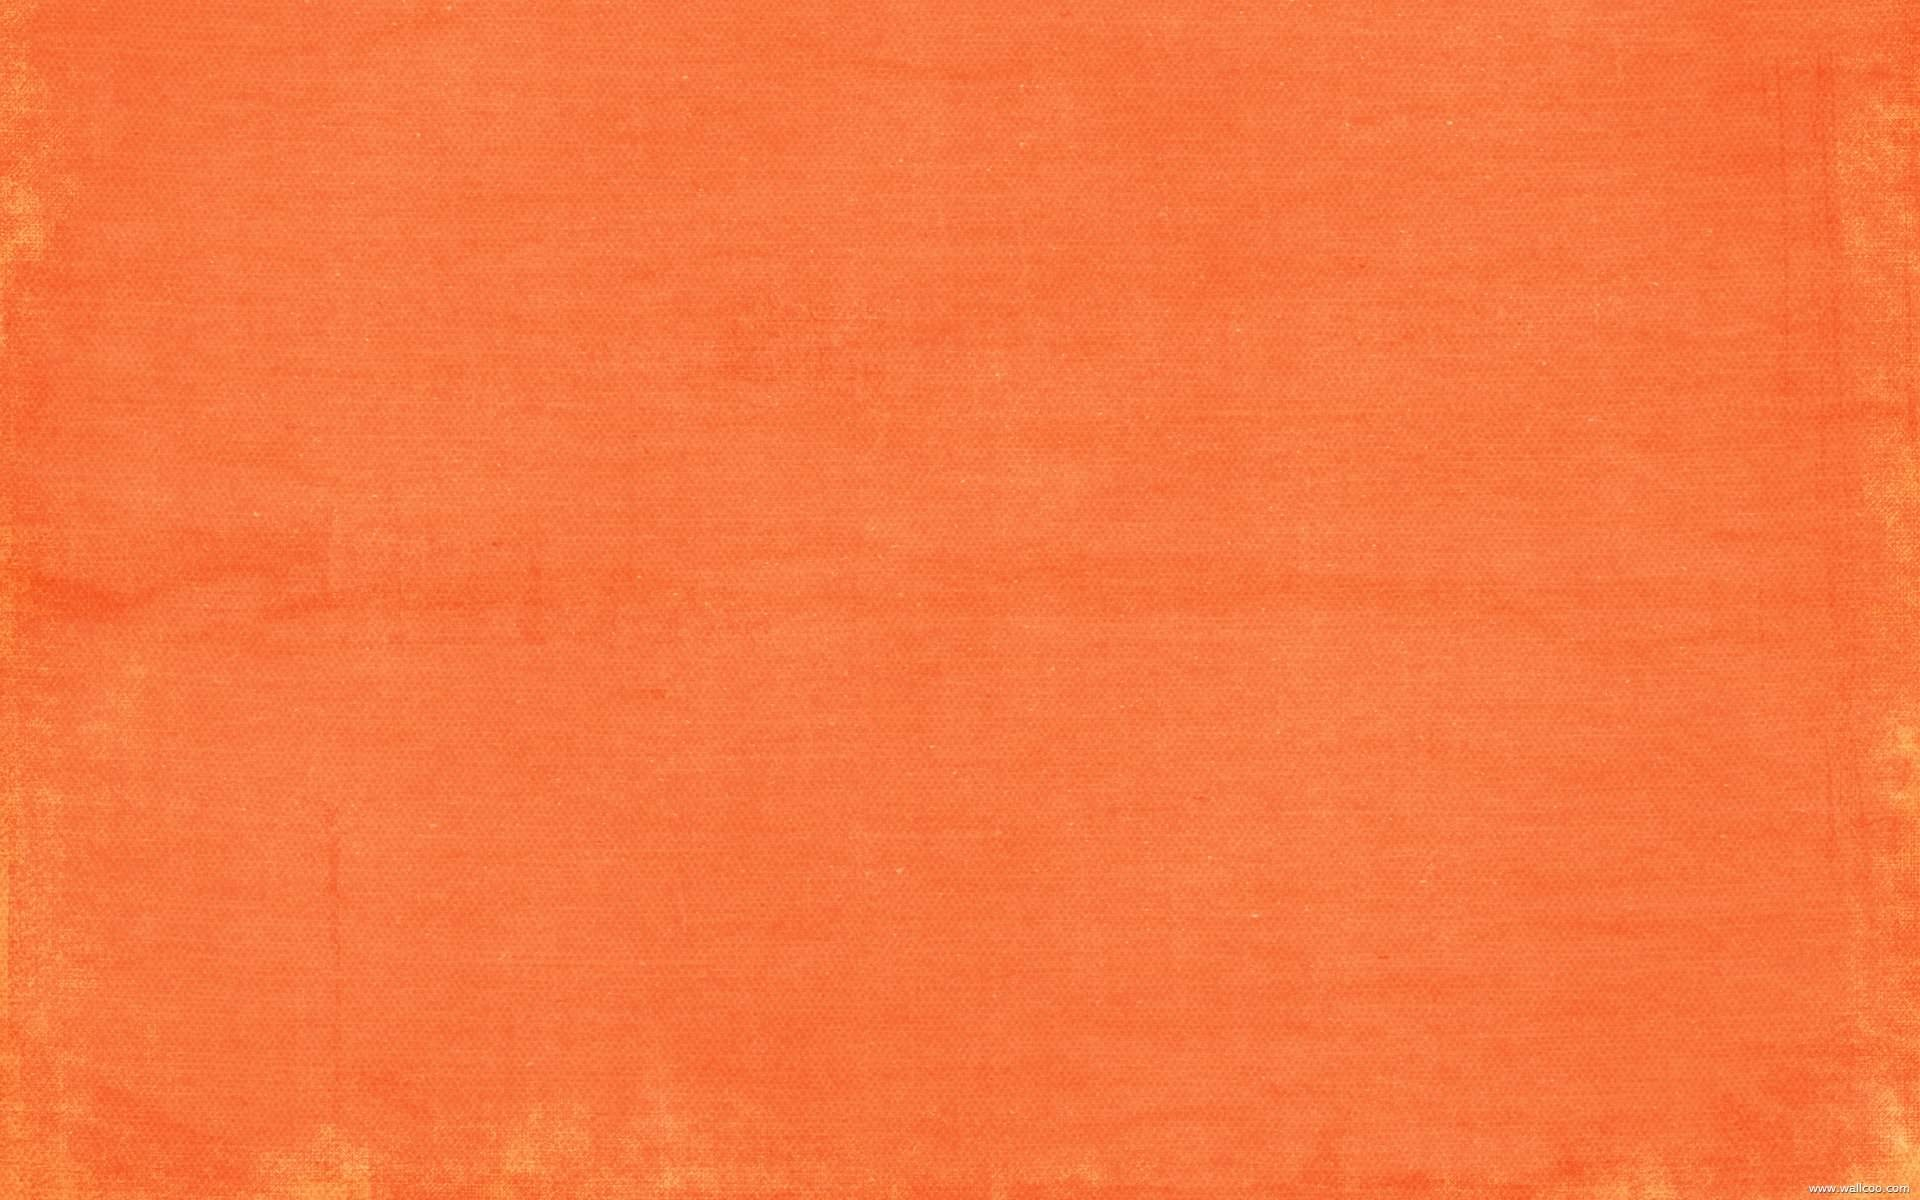 1920x1200 Orange Solid Wallpaper For You